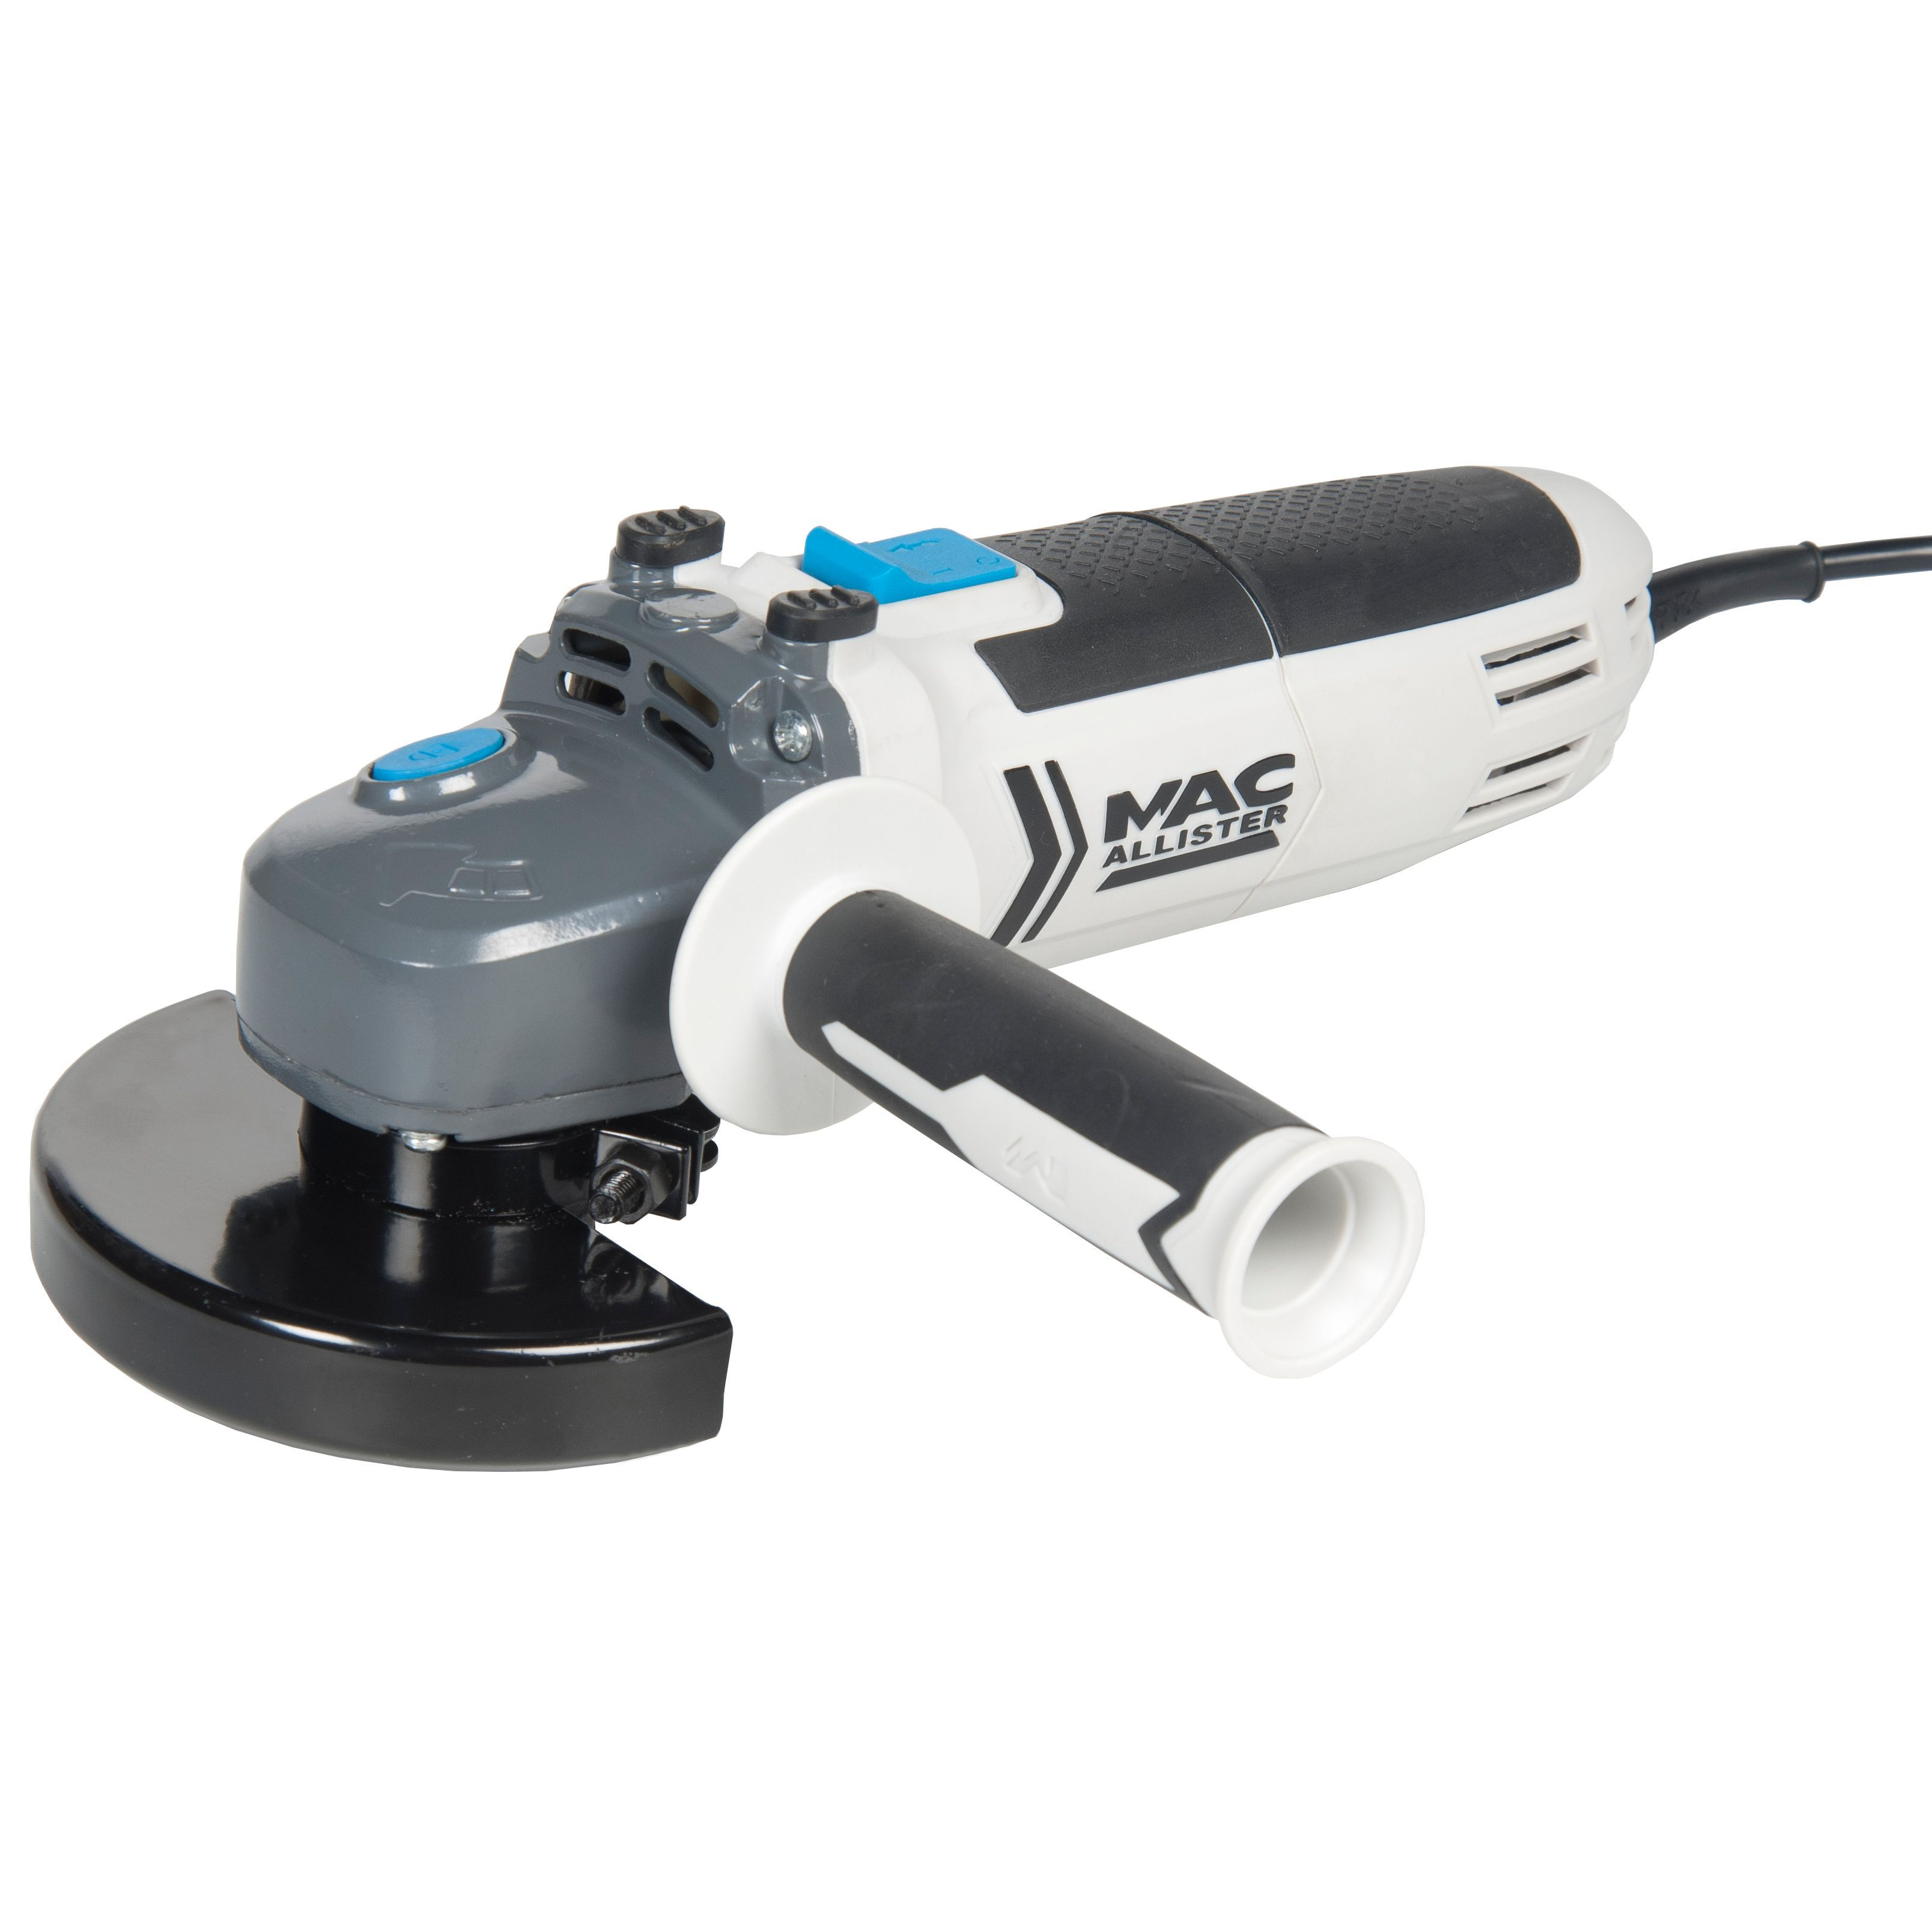 Mac Allister 750w 220 240v 115mm Angle Grinder Msag750